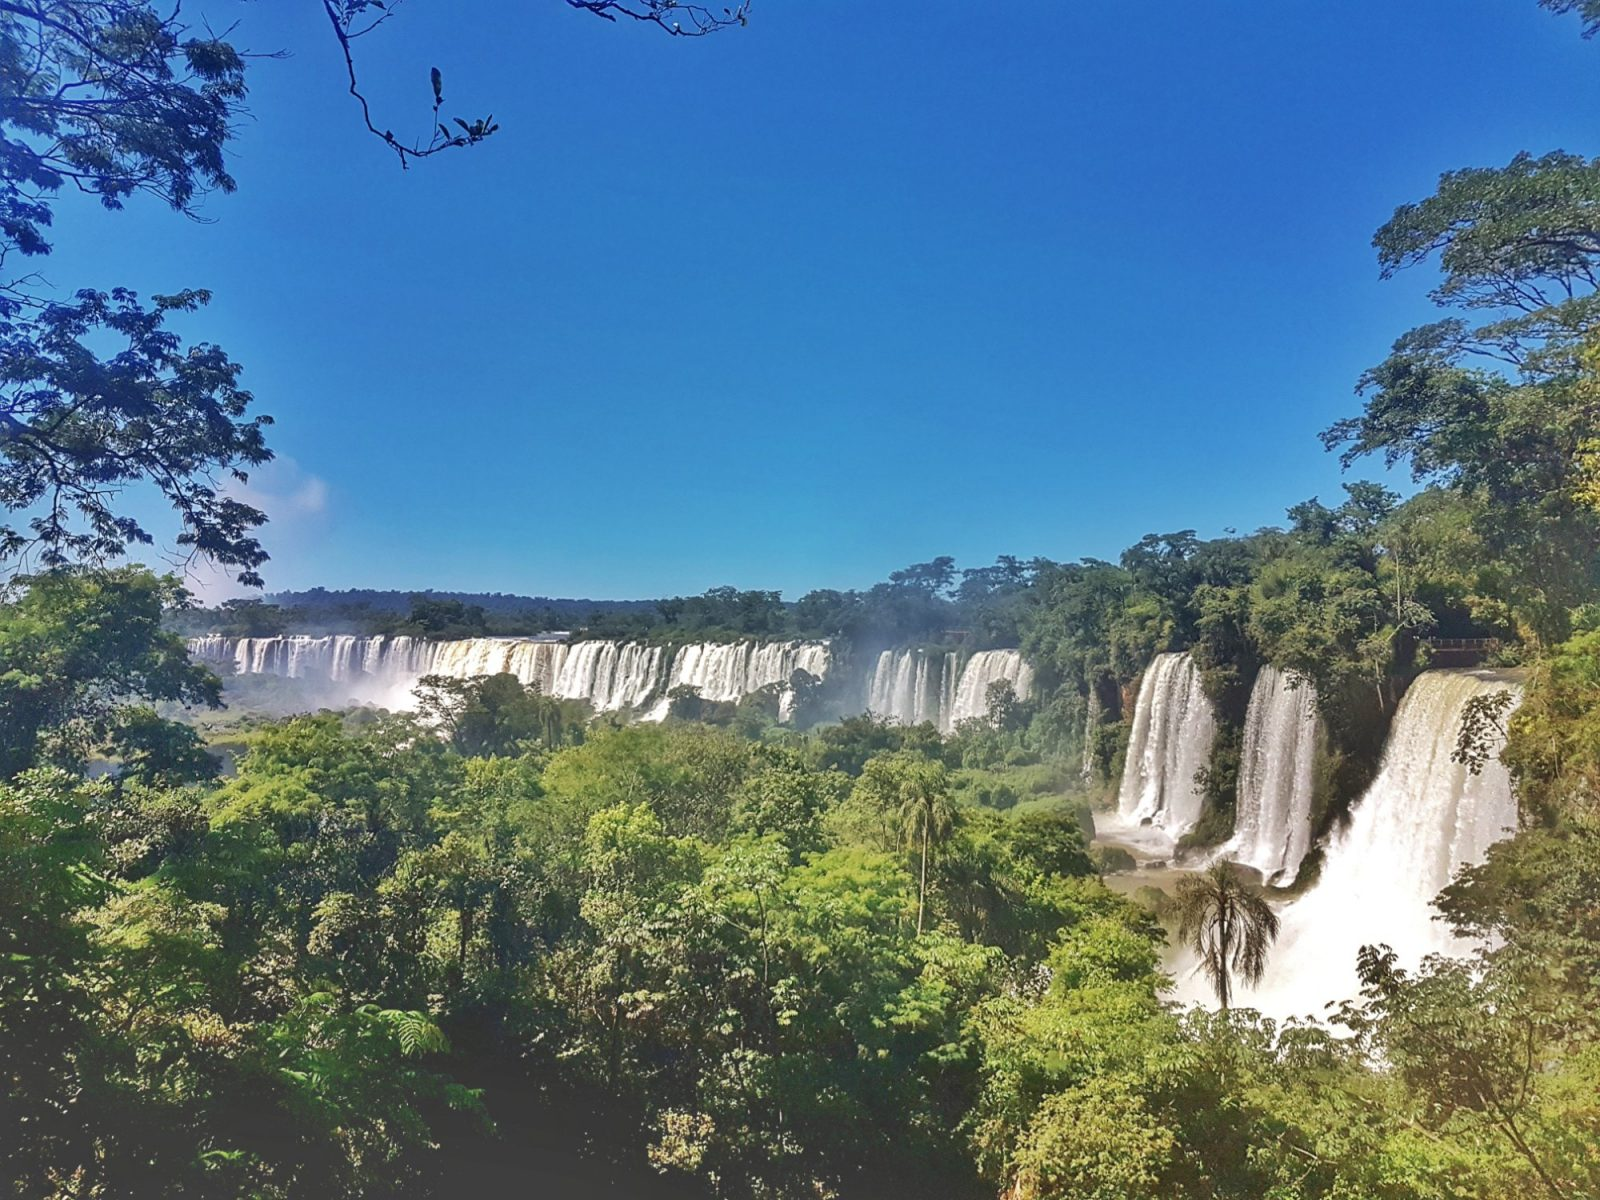 "<img src=""images/"" width=""800"" height=""600"" alt=""iguazú falls - 20180202 102505 011663424790 - Argentina: Tips For a Budget Savvy Trip to The Iguazú Falls"">"